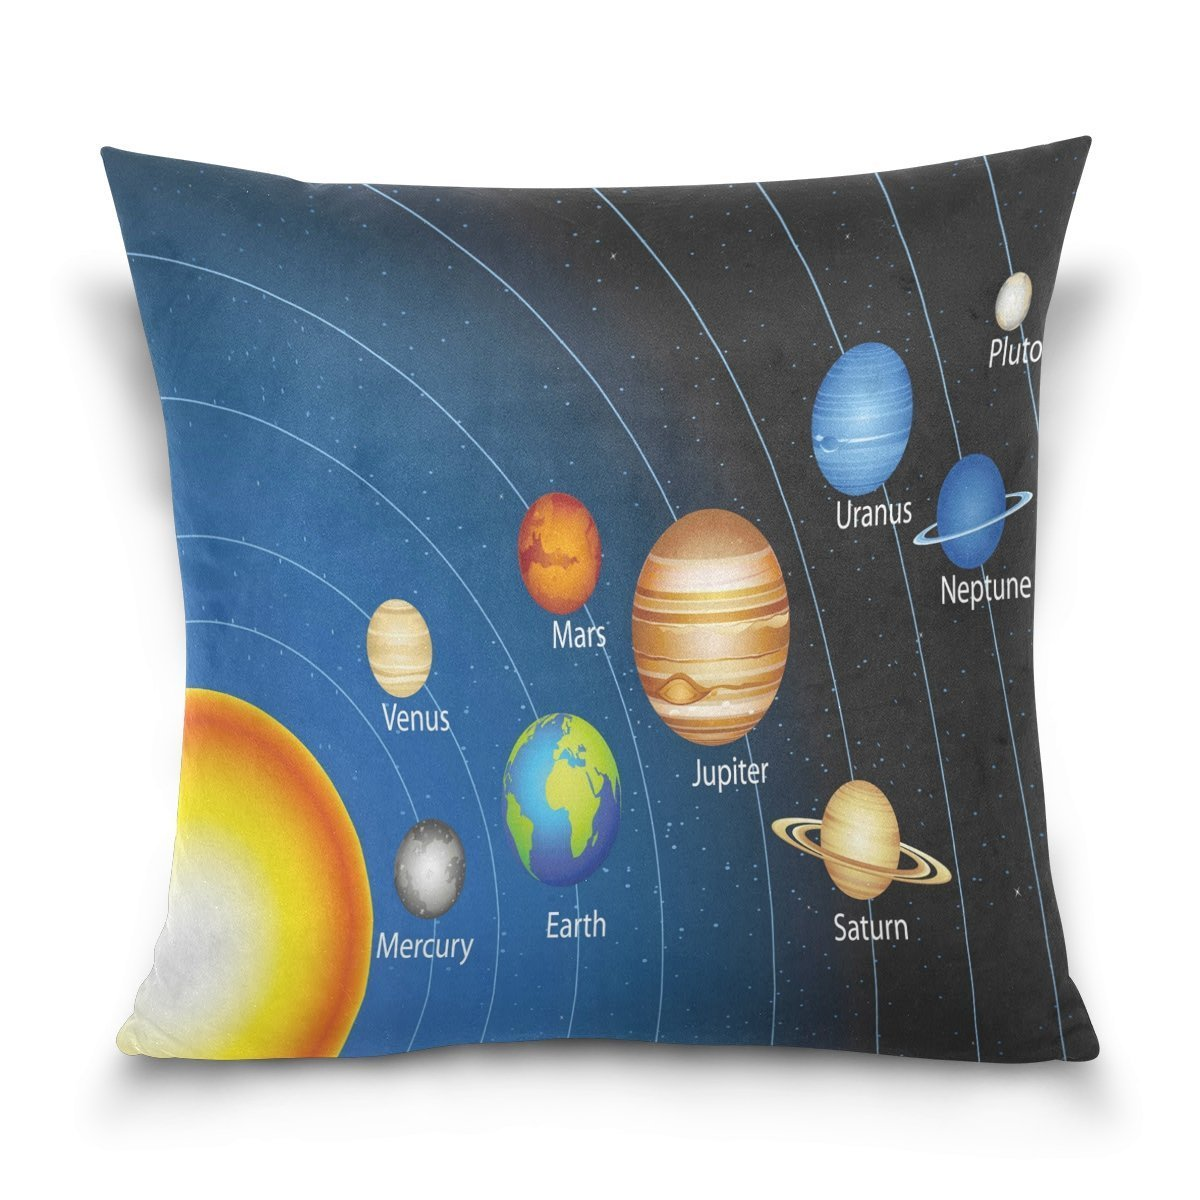 ALAZA Throw Pillow Case Decorative Cushion Cover Square Pillowcase, Solar System Planet Outer Space Sofa Bed Pillow Case Cover(16x16inch) Twin Sides ALovjp g1239037p34c21s20